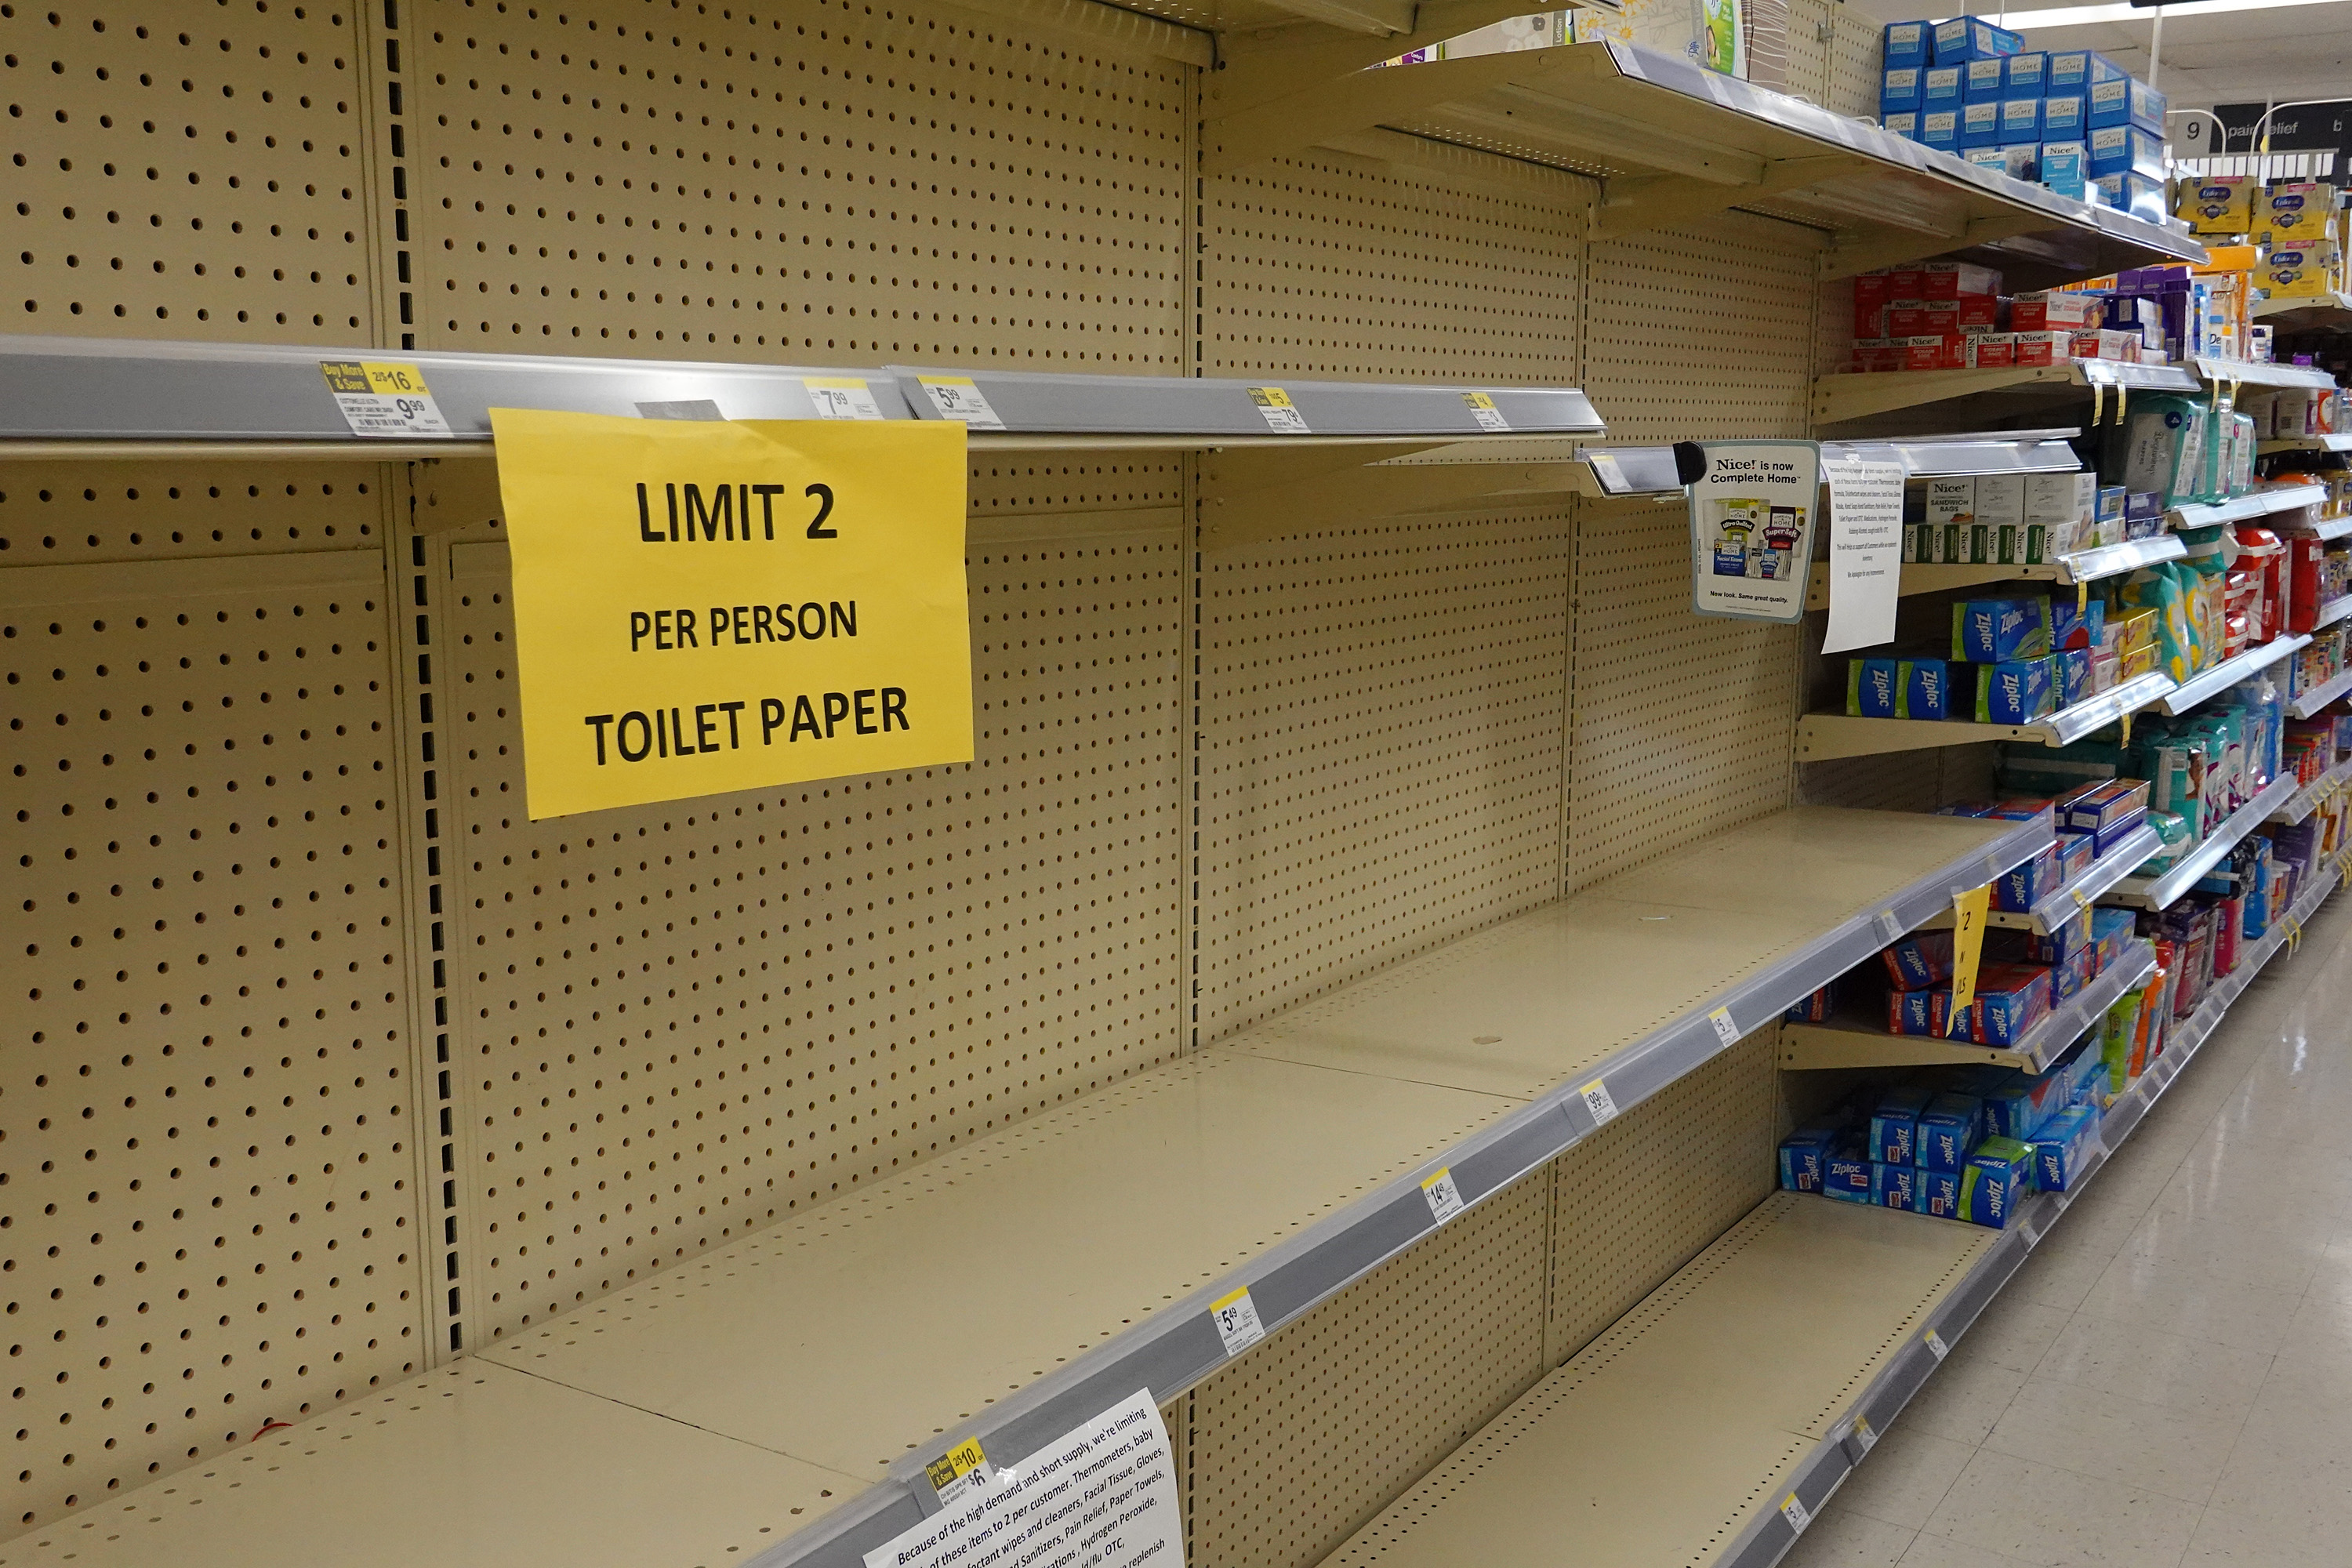 """Empty toilet paper shelves in a store, with a """"limit 2 per person"""" sign."""